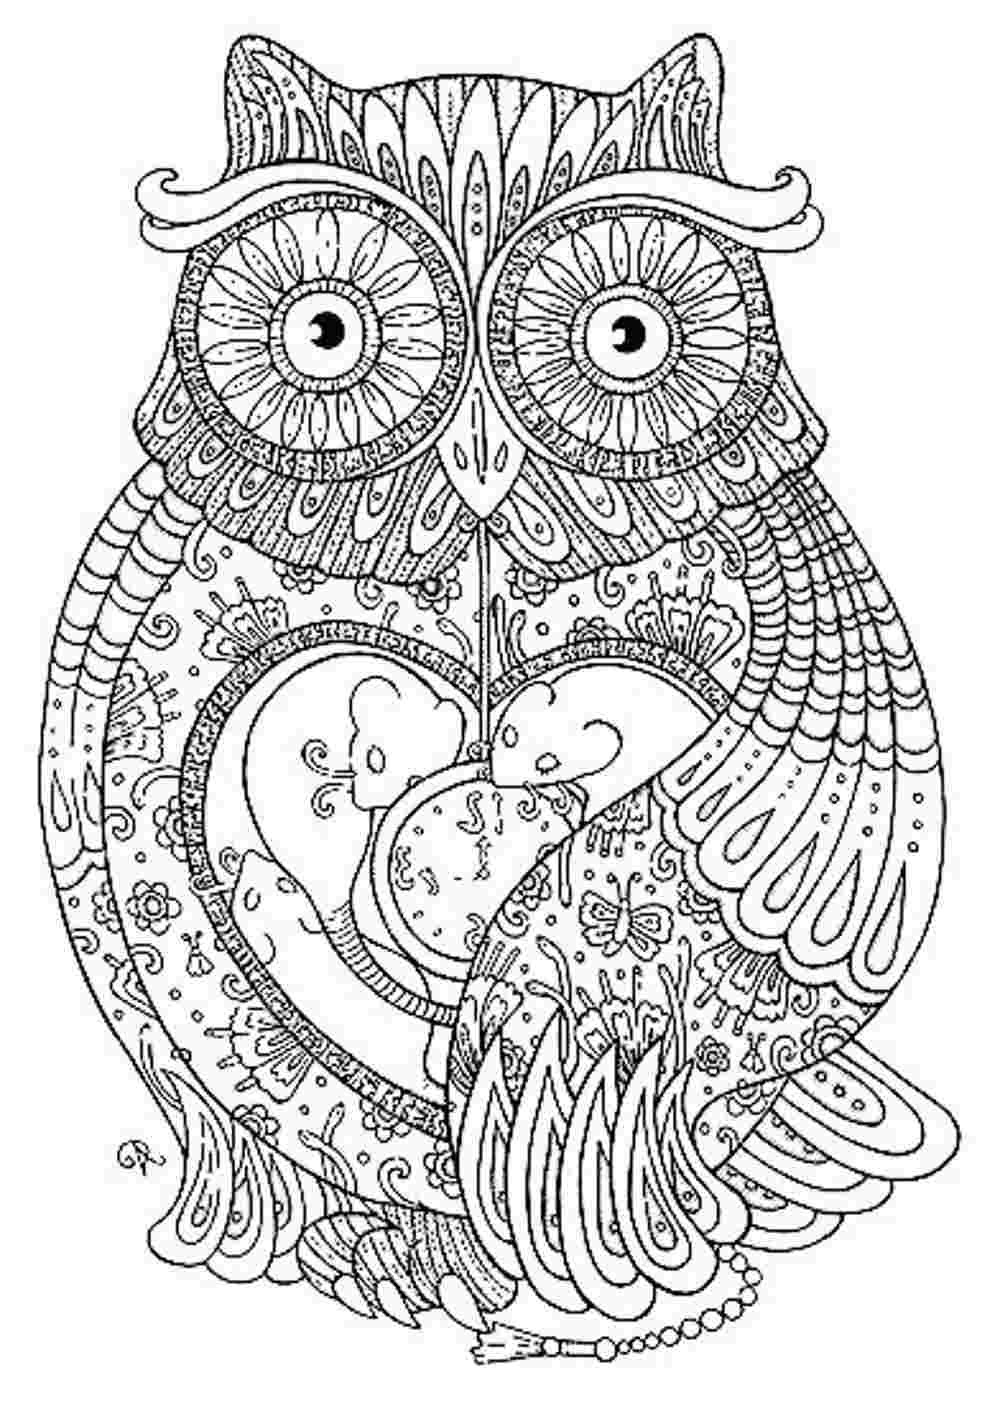 Coloring Book For Adults  Free Printable Coloring Book Pages Best Adult Coloring